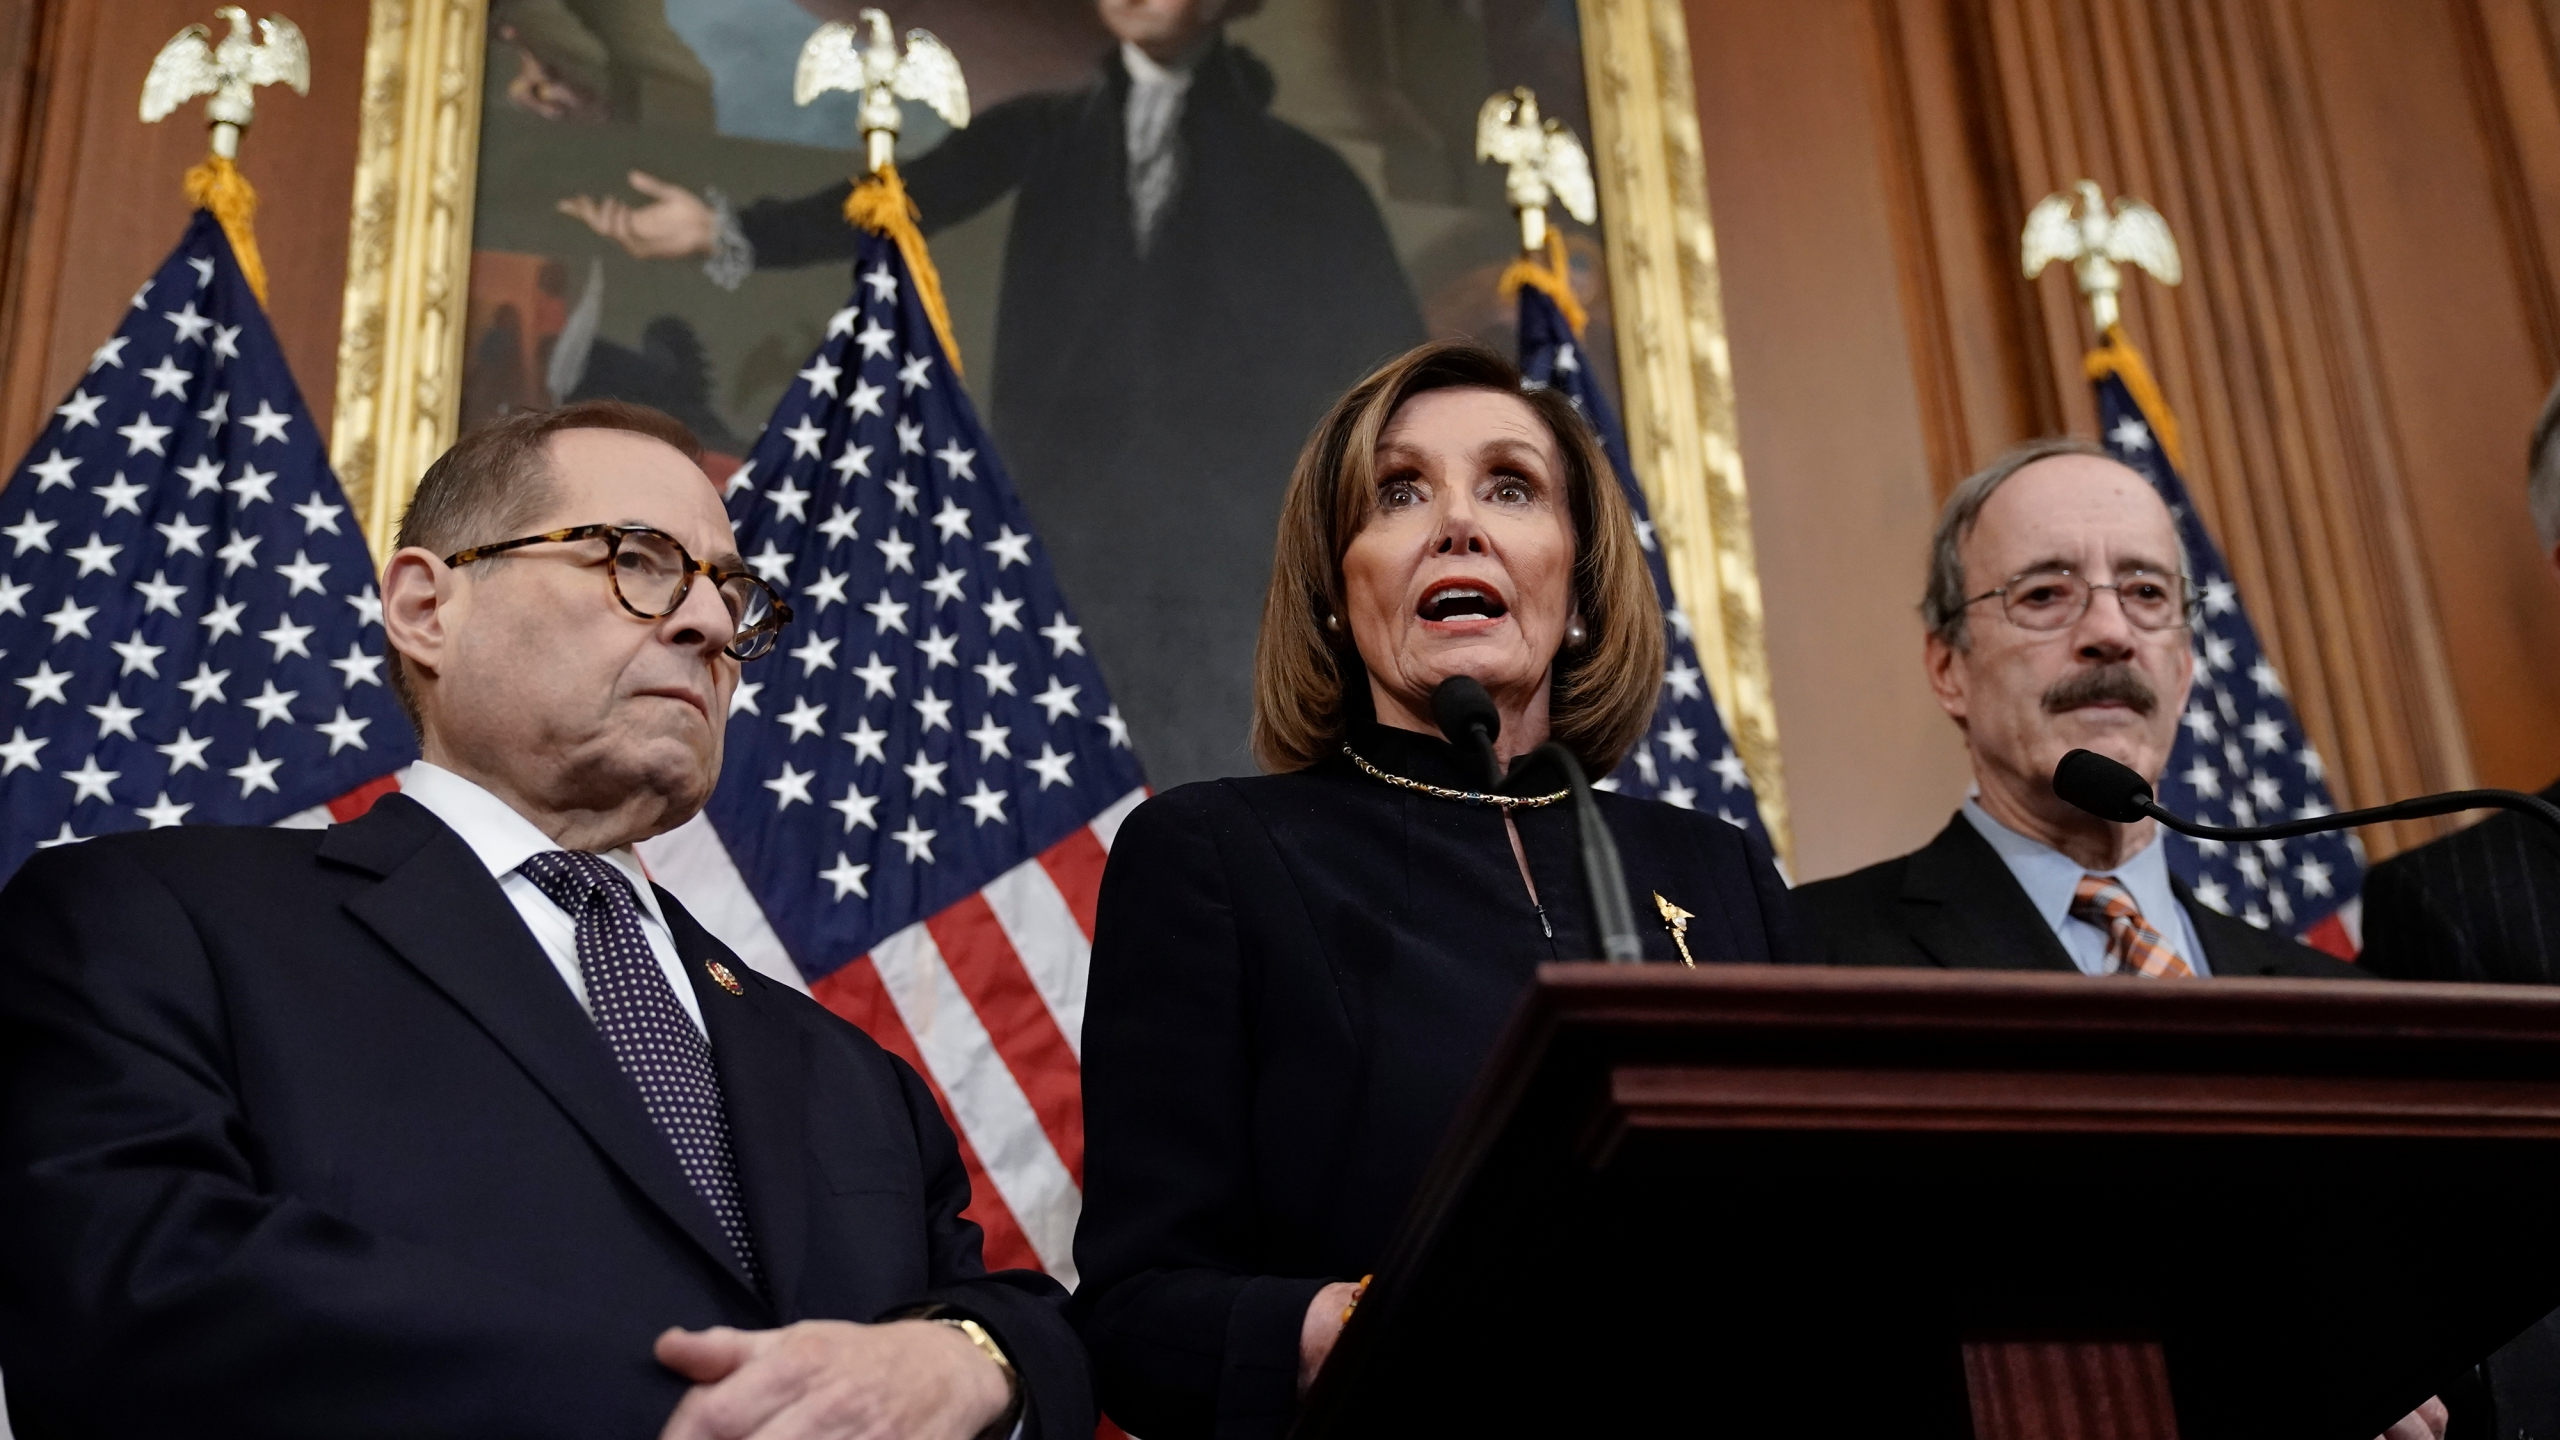 Nancy Pelosi, Jerrold Nadler, Eliot Engel